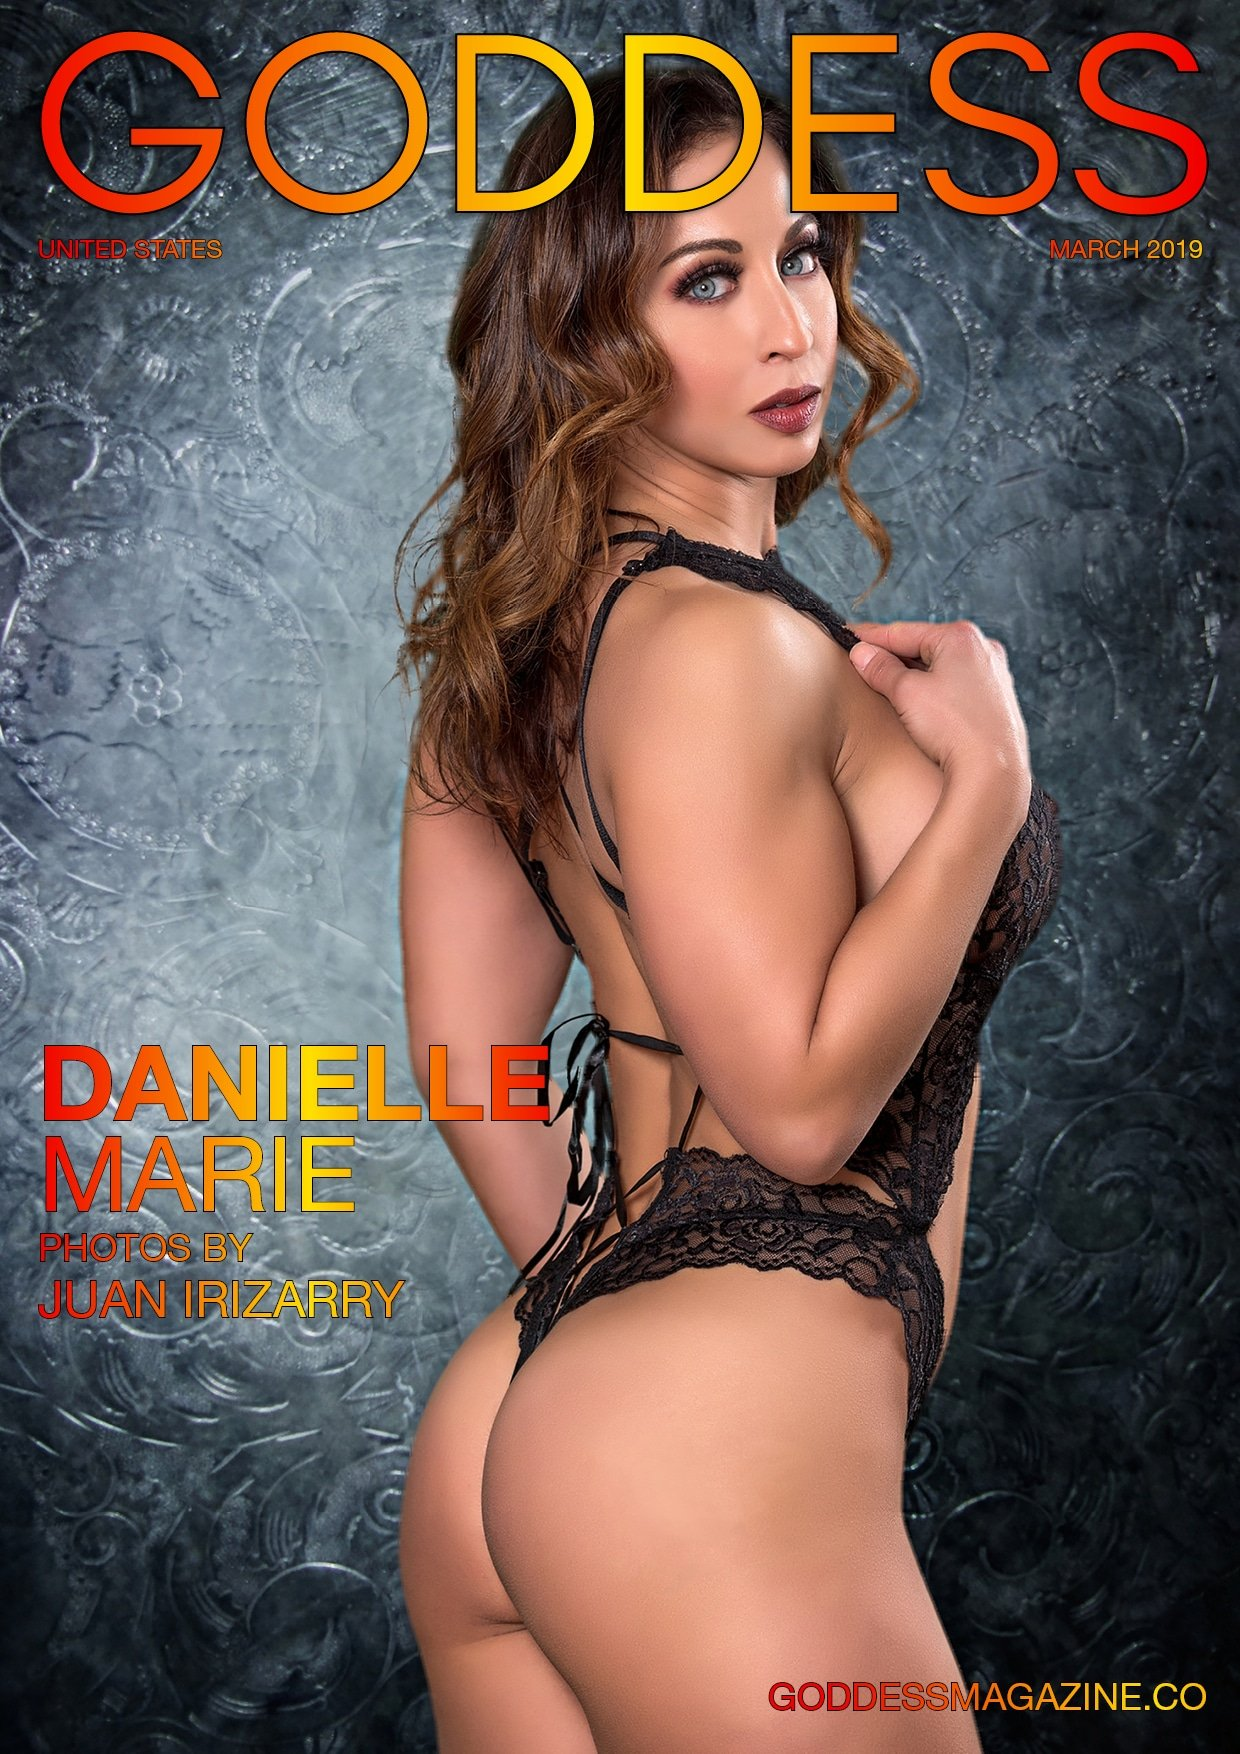 Goddess Magazine – March 2019 – Danielle Marie 1